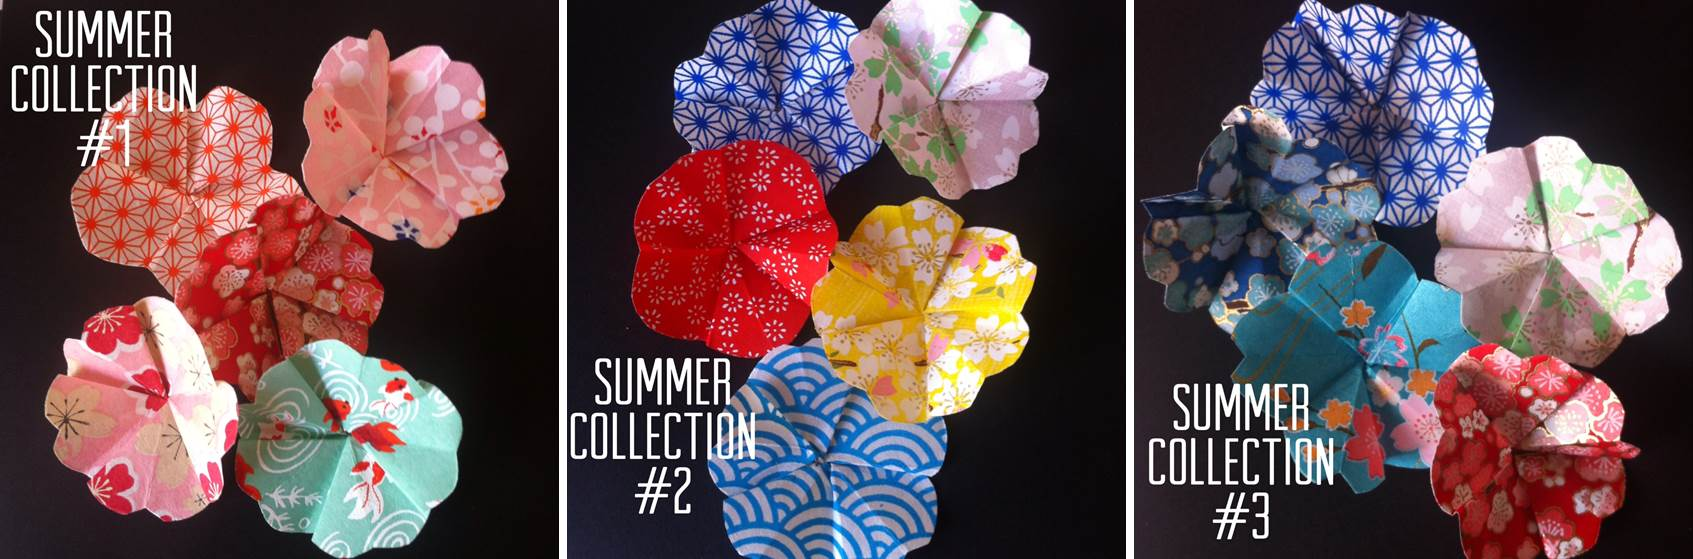 Summer Collection_July